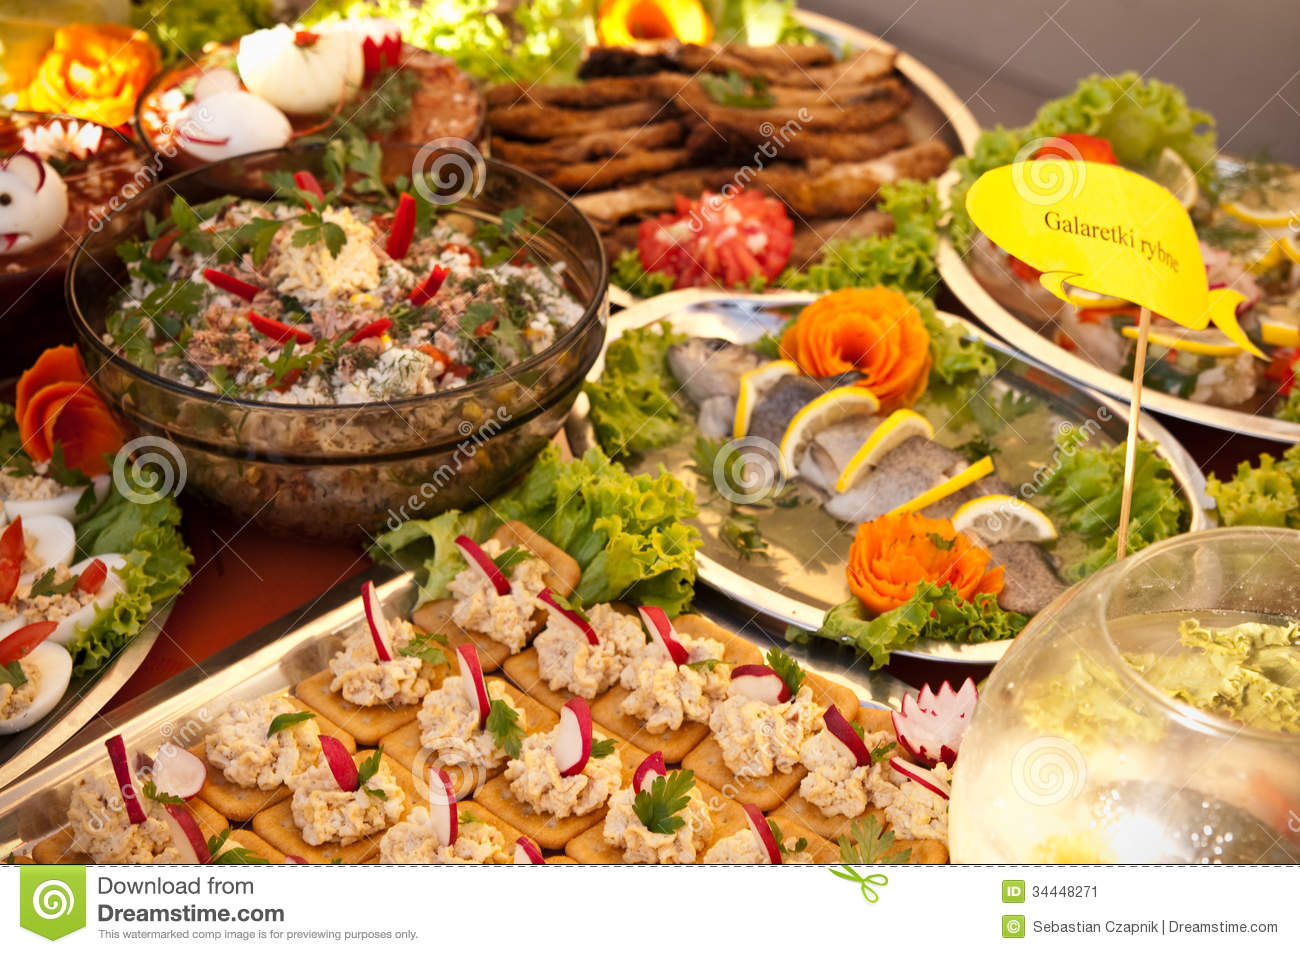 Swedish table of fish dishes stock image image of many for Fish dish menu